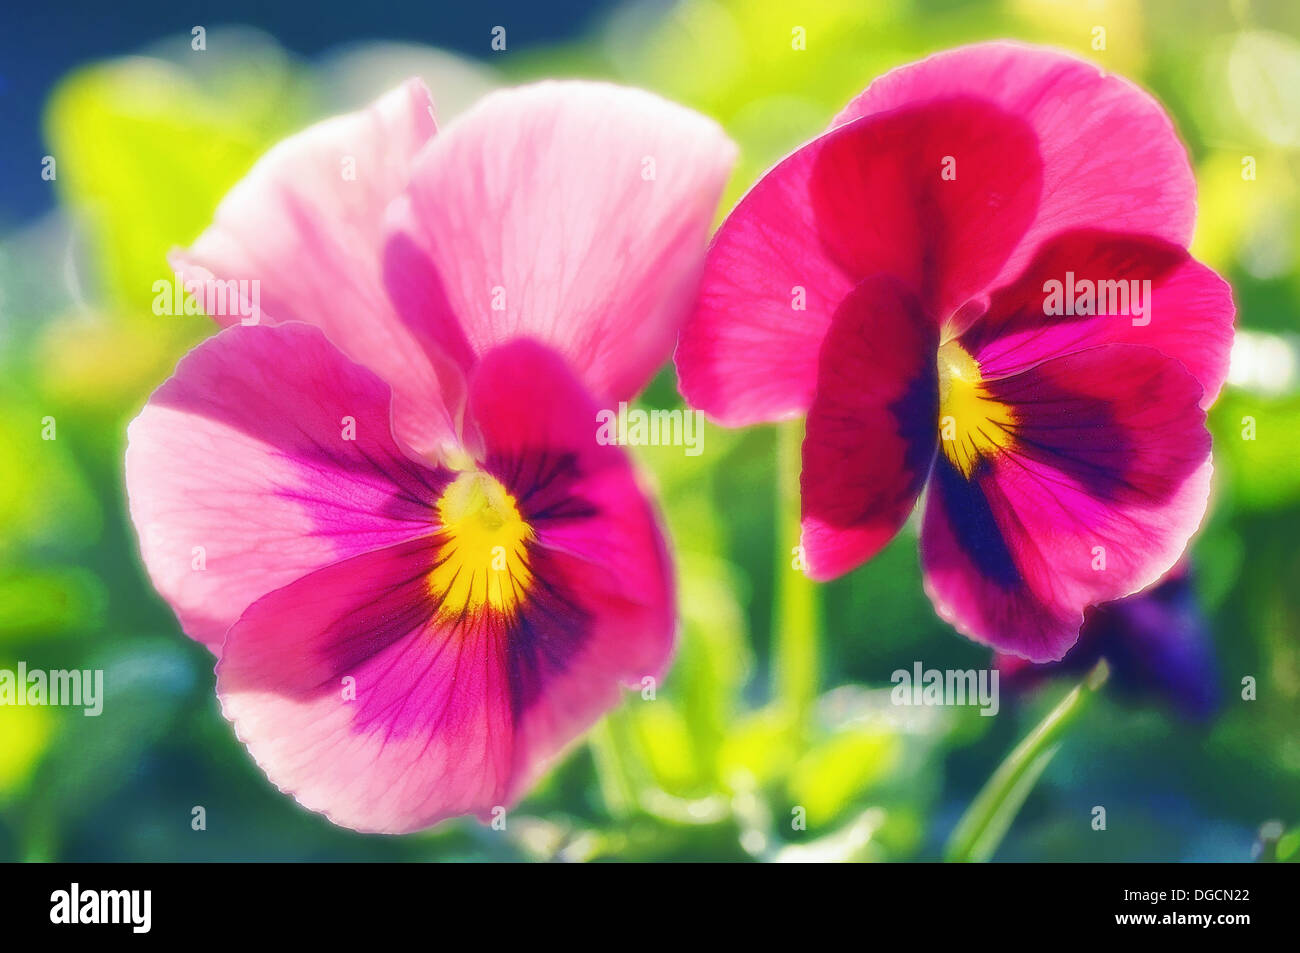 Two pink pansy flowers viola stock photos two pink pansy flowers two pink pansy flowers viola x wittrockiana may 2007 maryland usa mightylinksfo